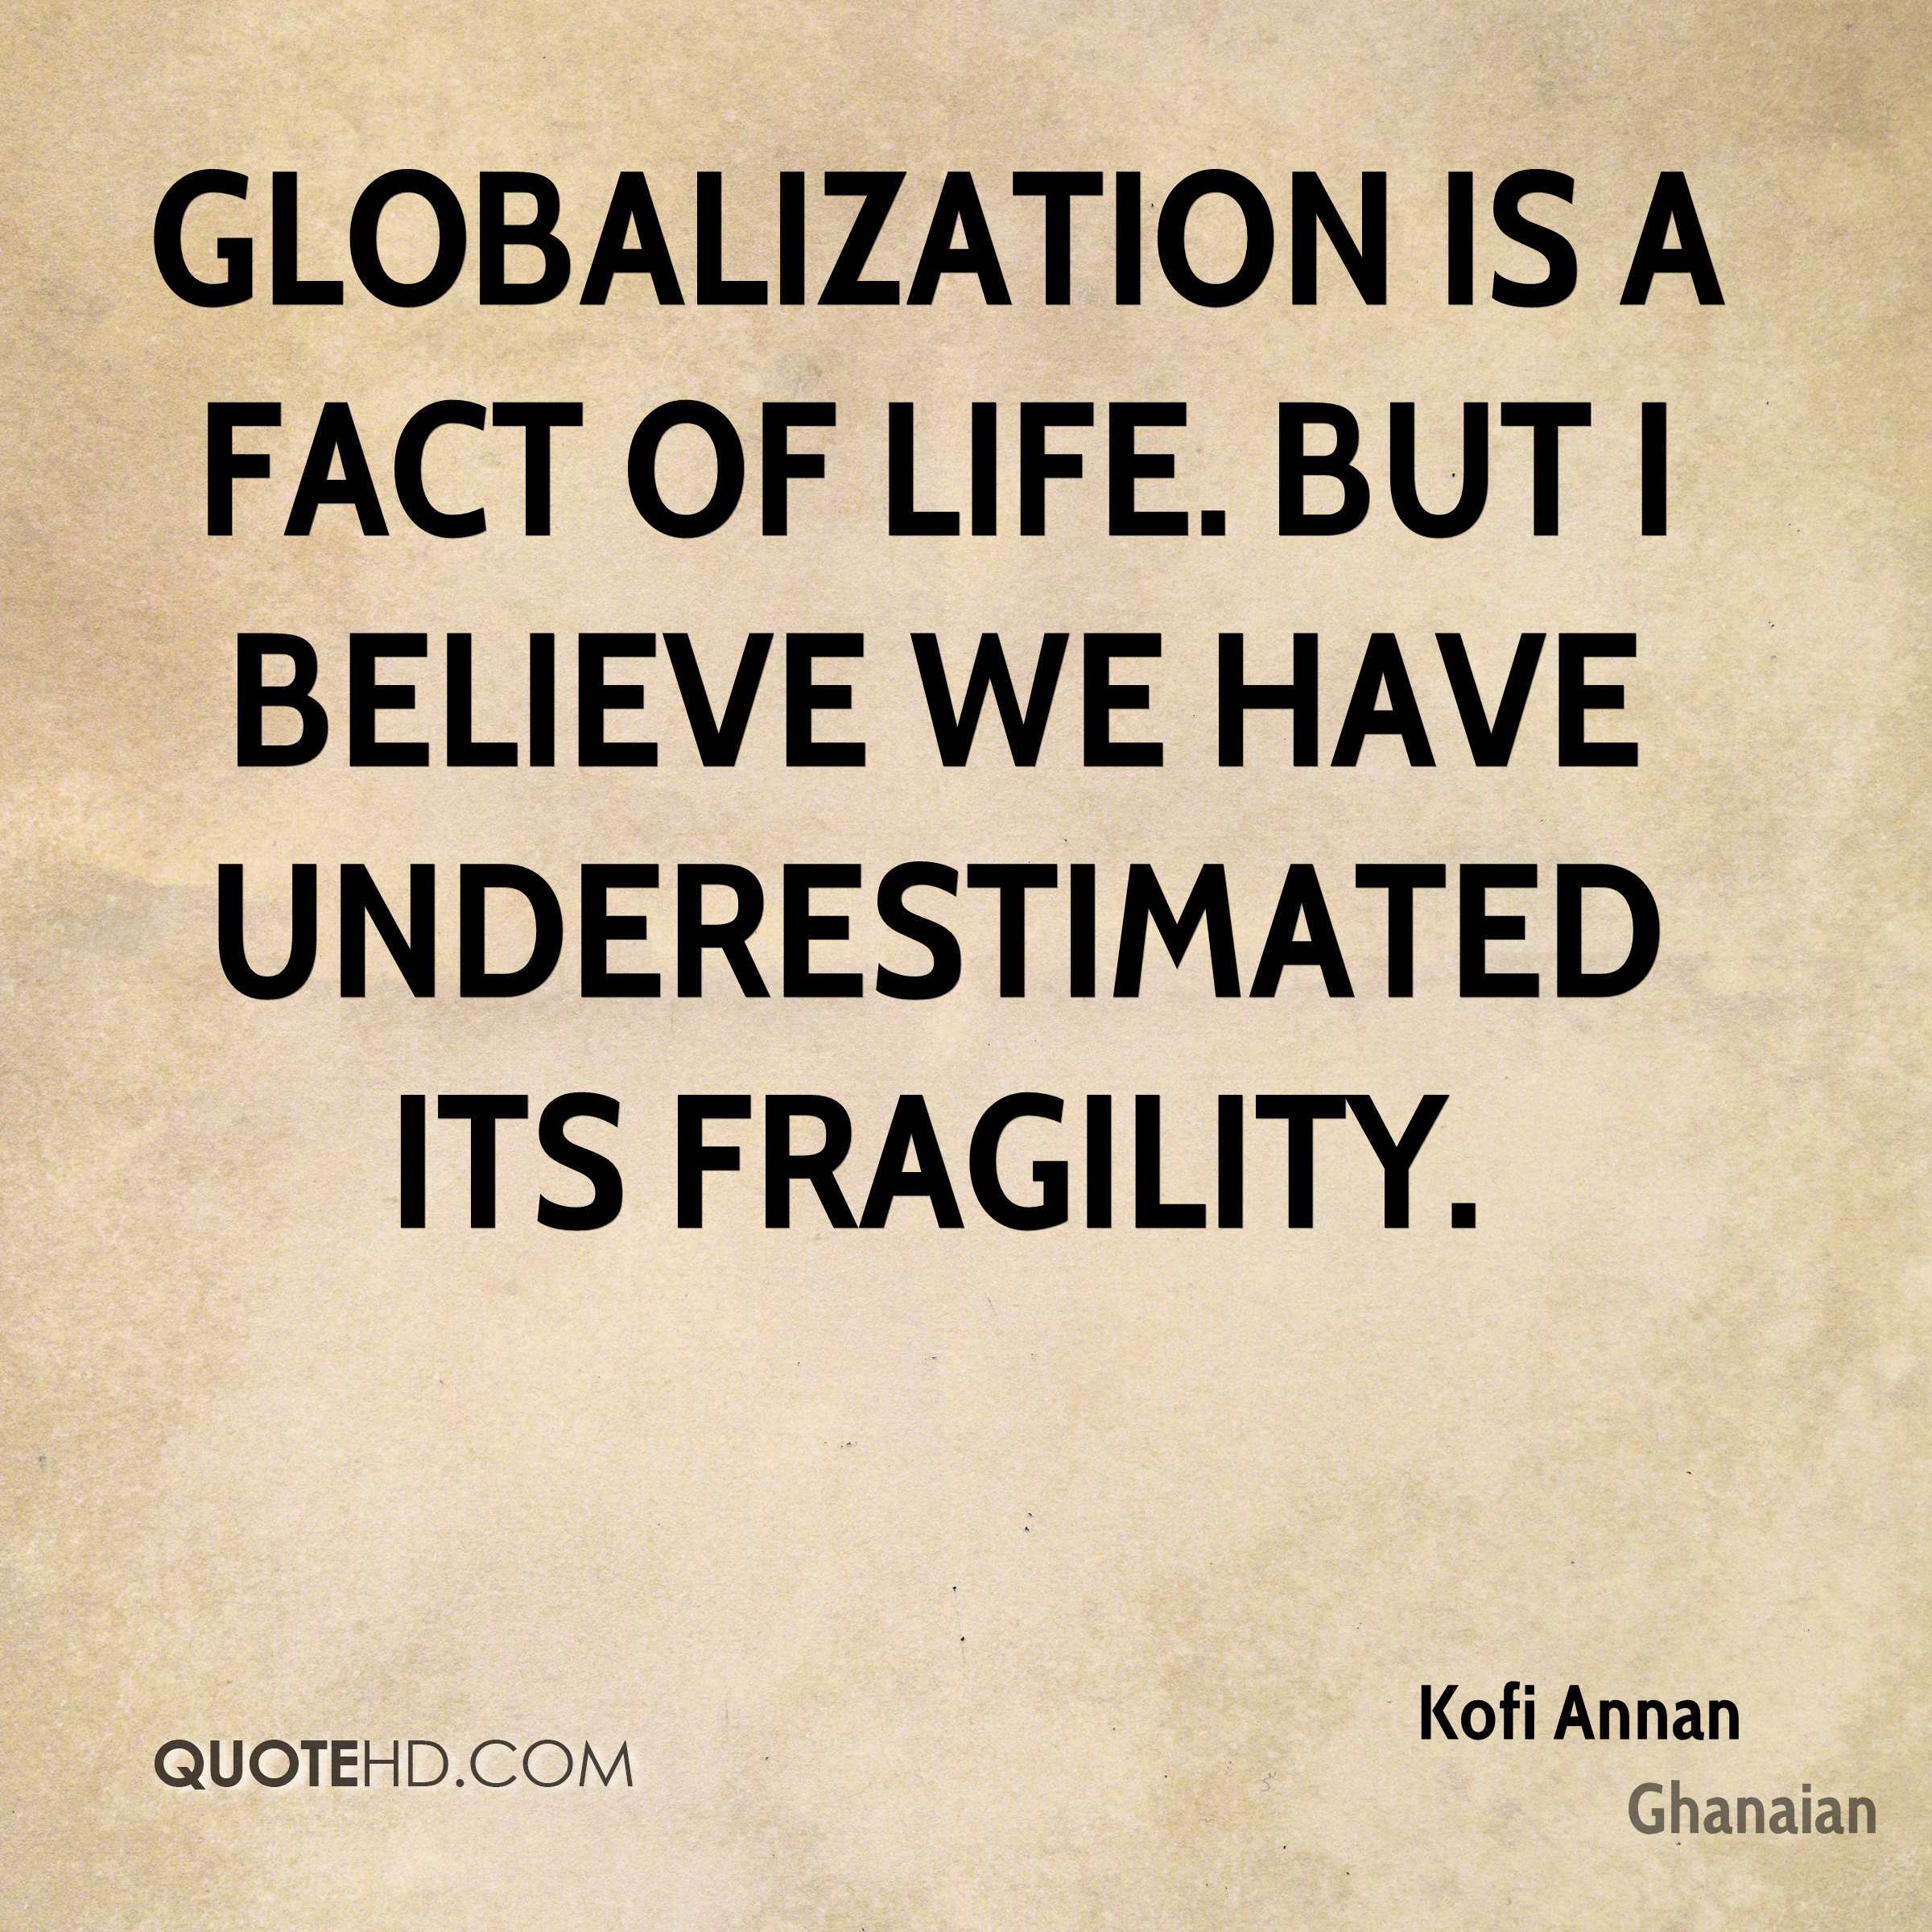 Globalization is a fact of life. But I believe we have underestimated its fragility.